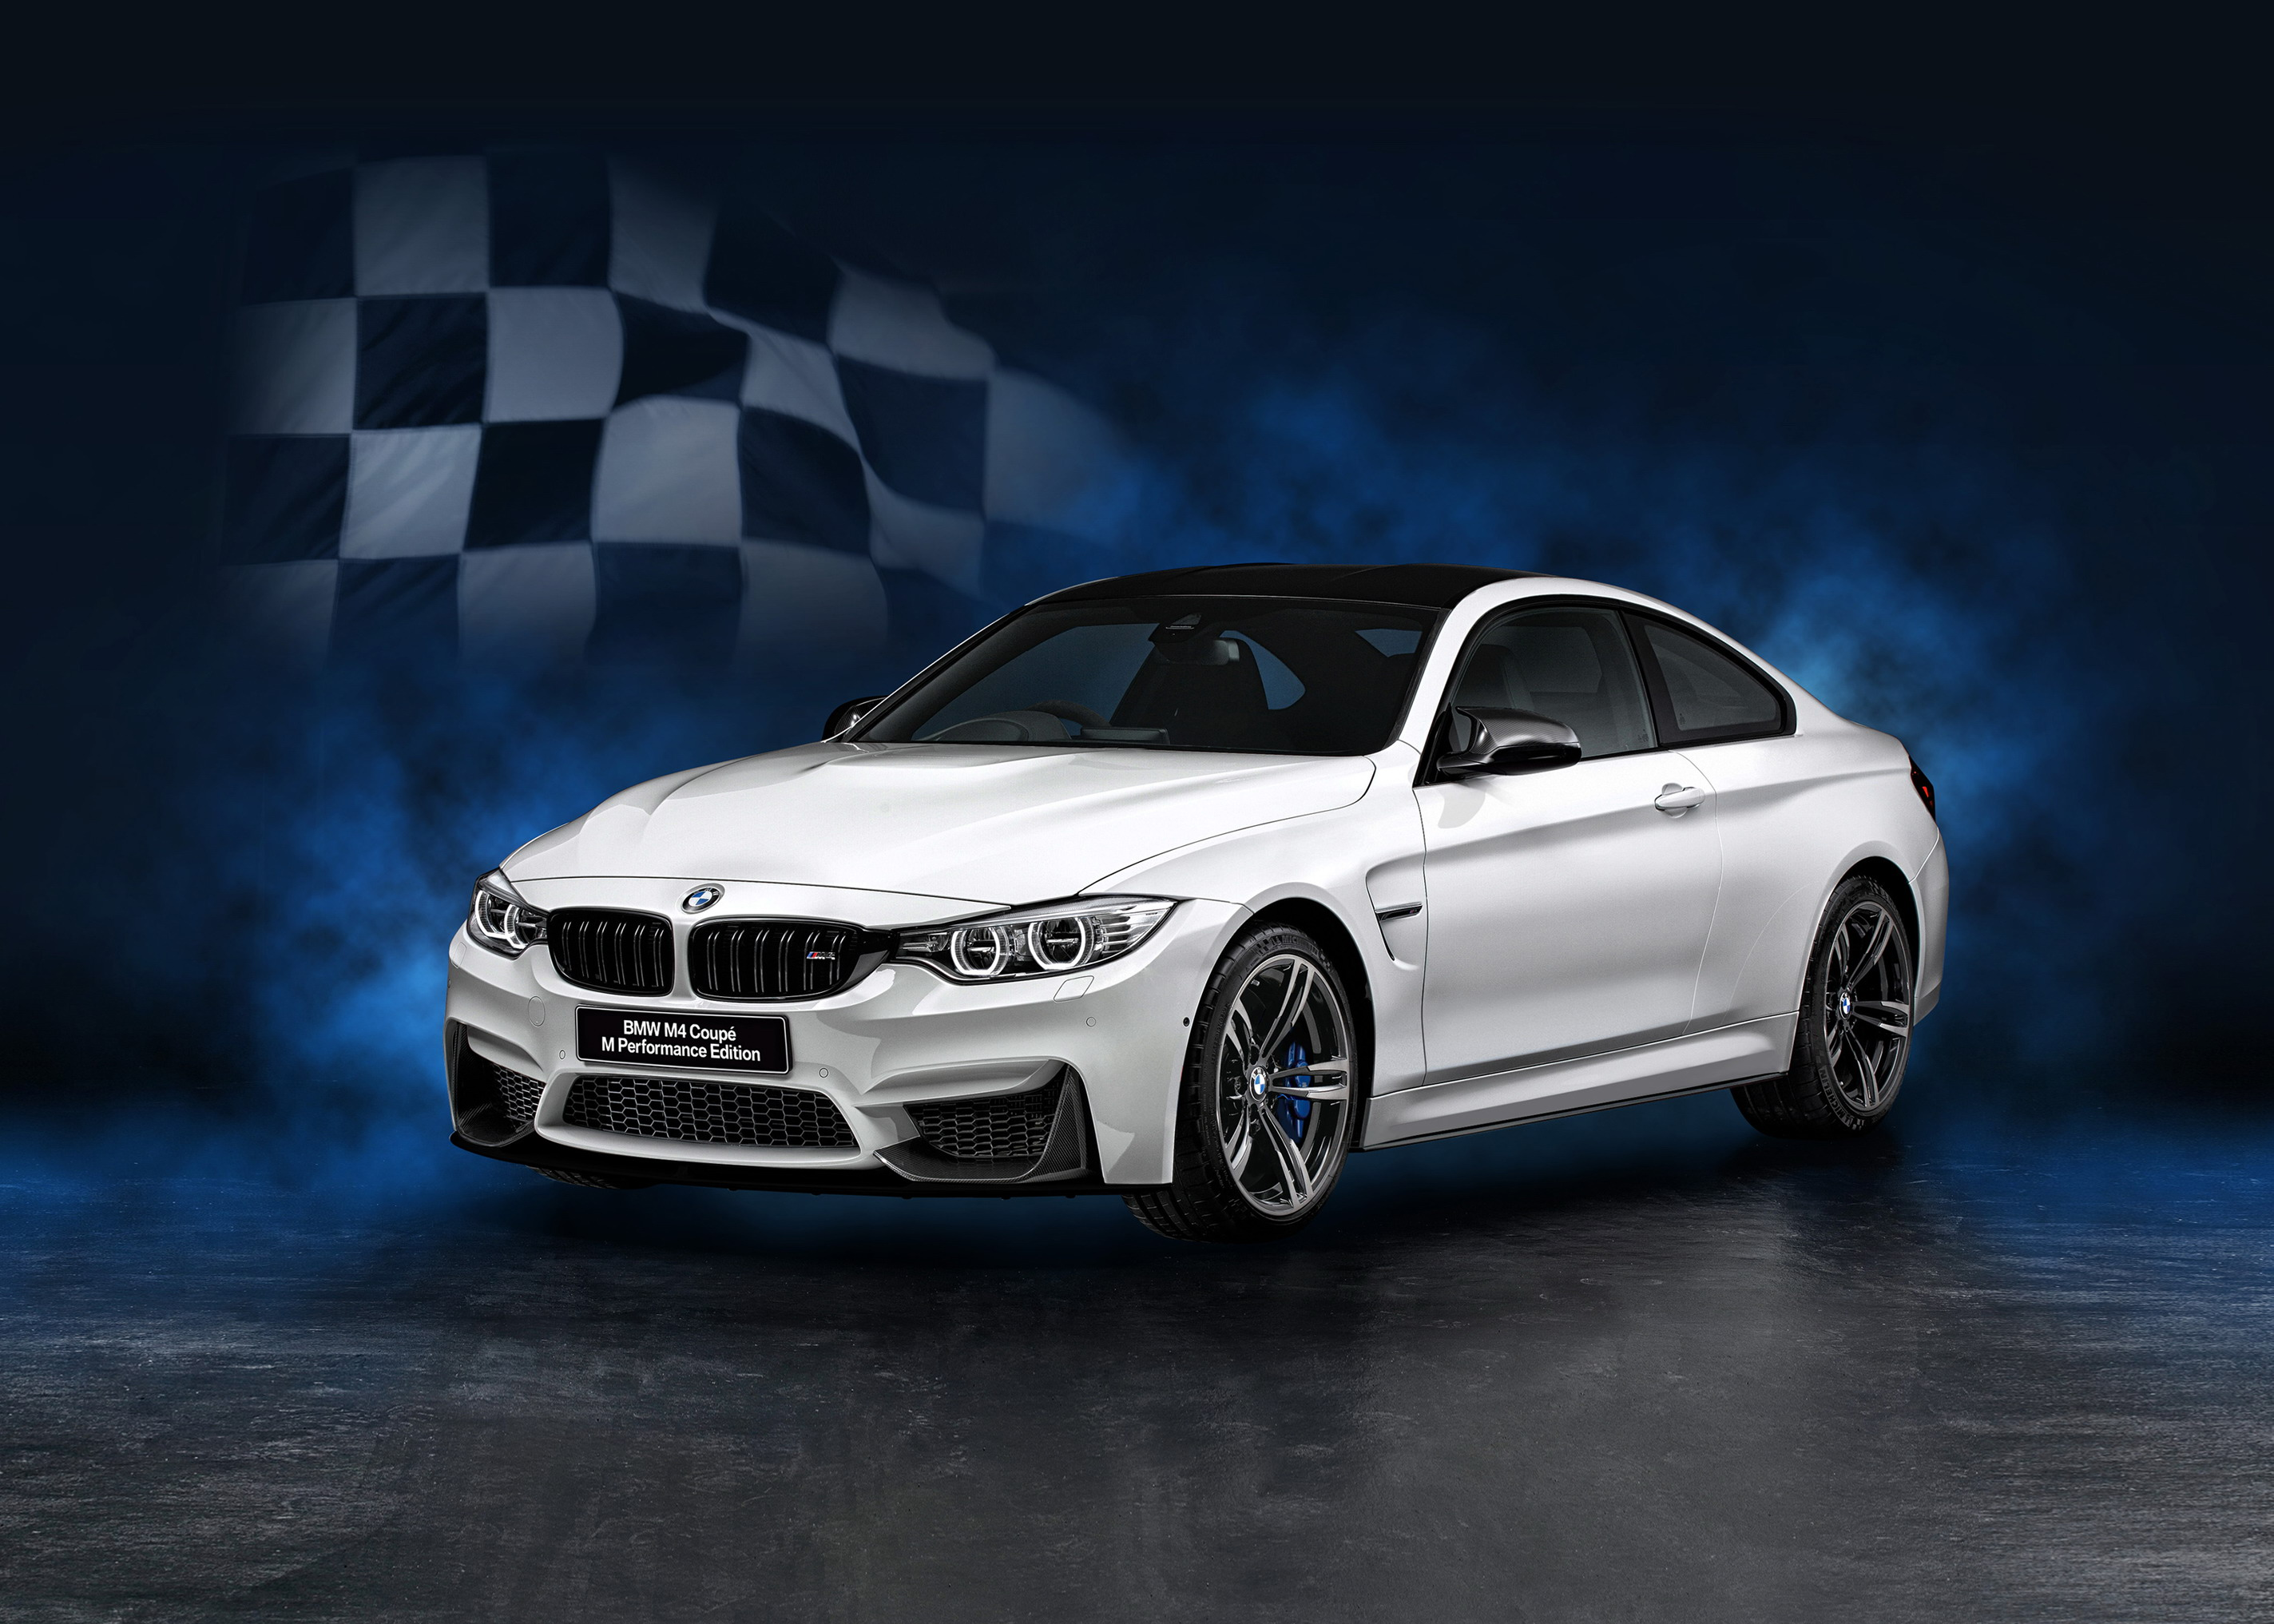 2015 BMW M4 Coupe M Performance Edition Gallery 650268